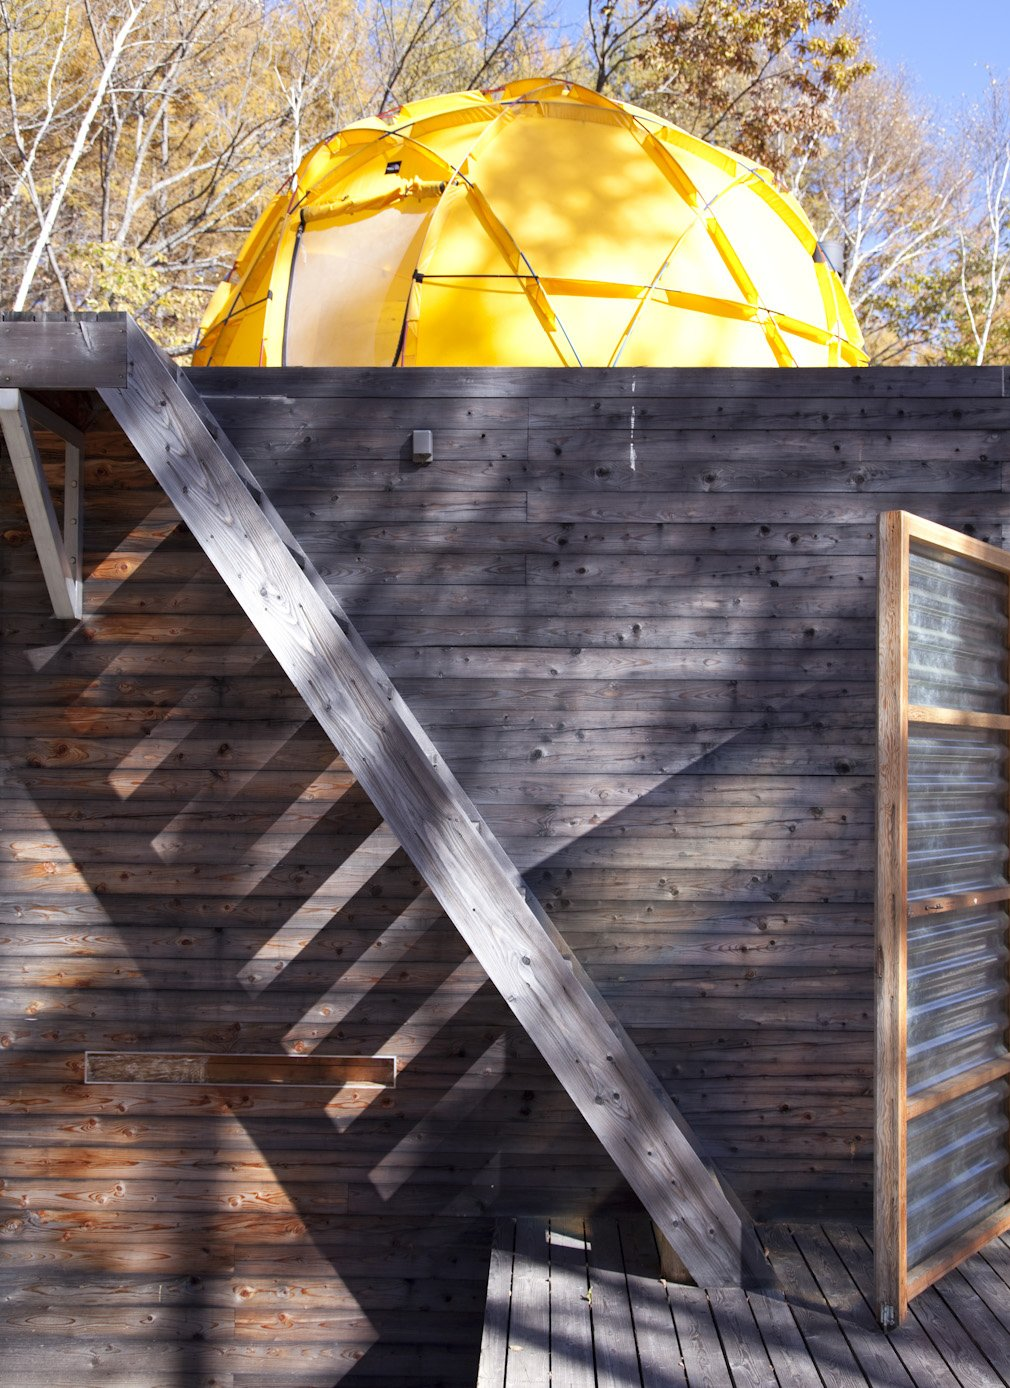 The yellow North Face tent looms over the top of the main building.  Photo 21 of 28 in A Platform for Living